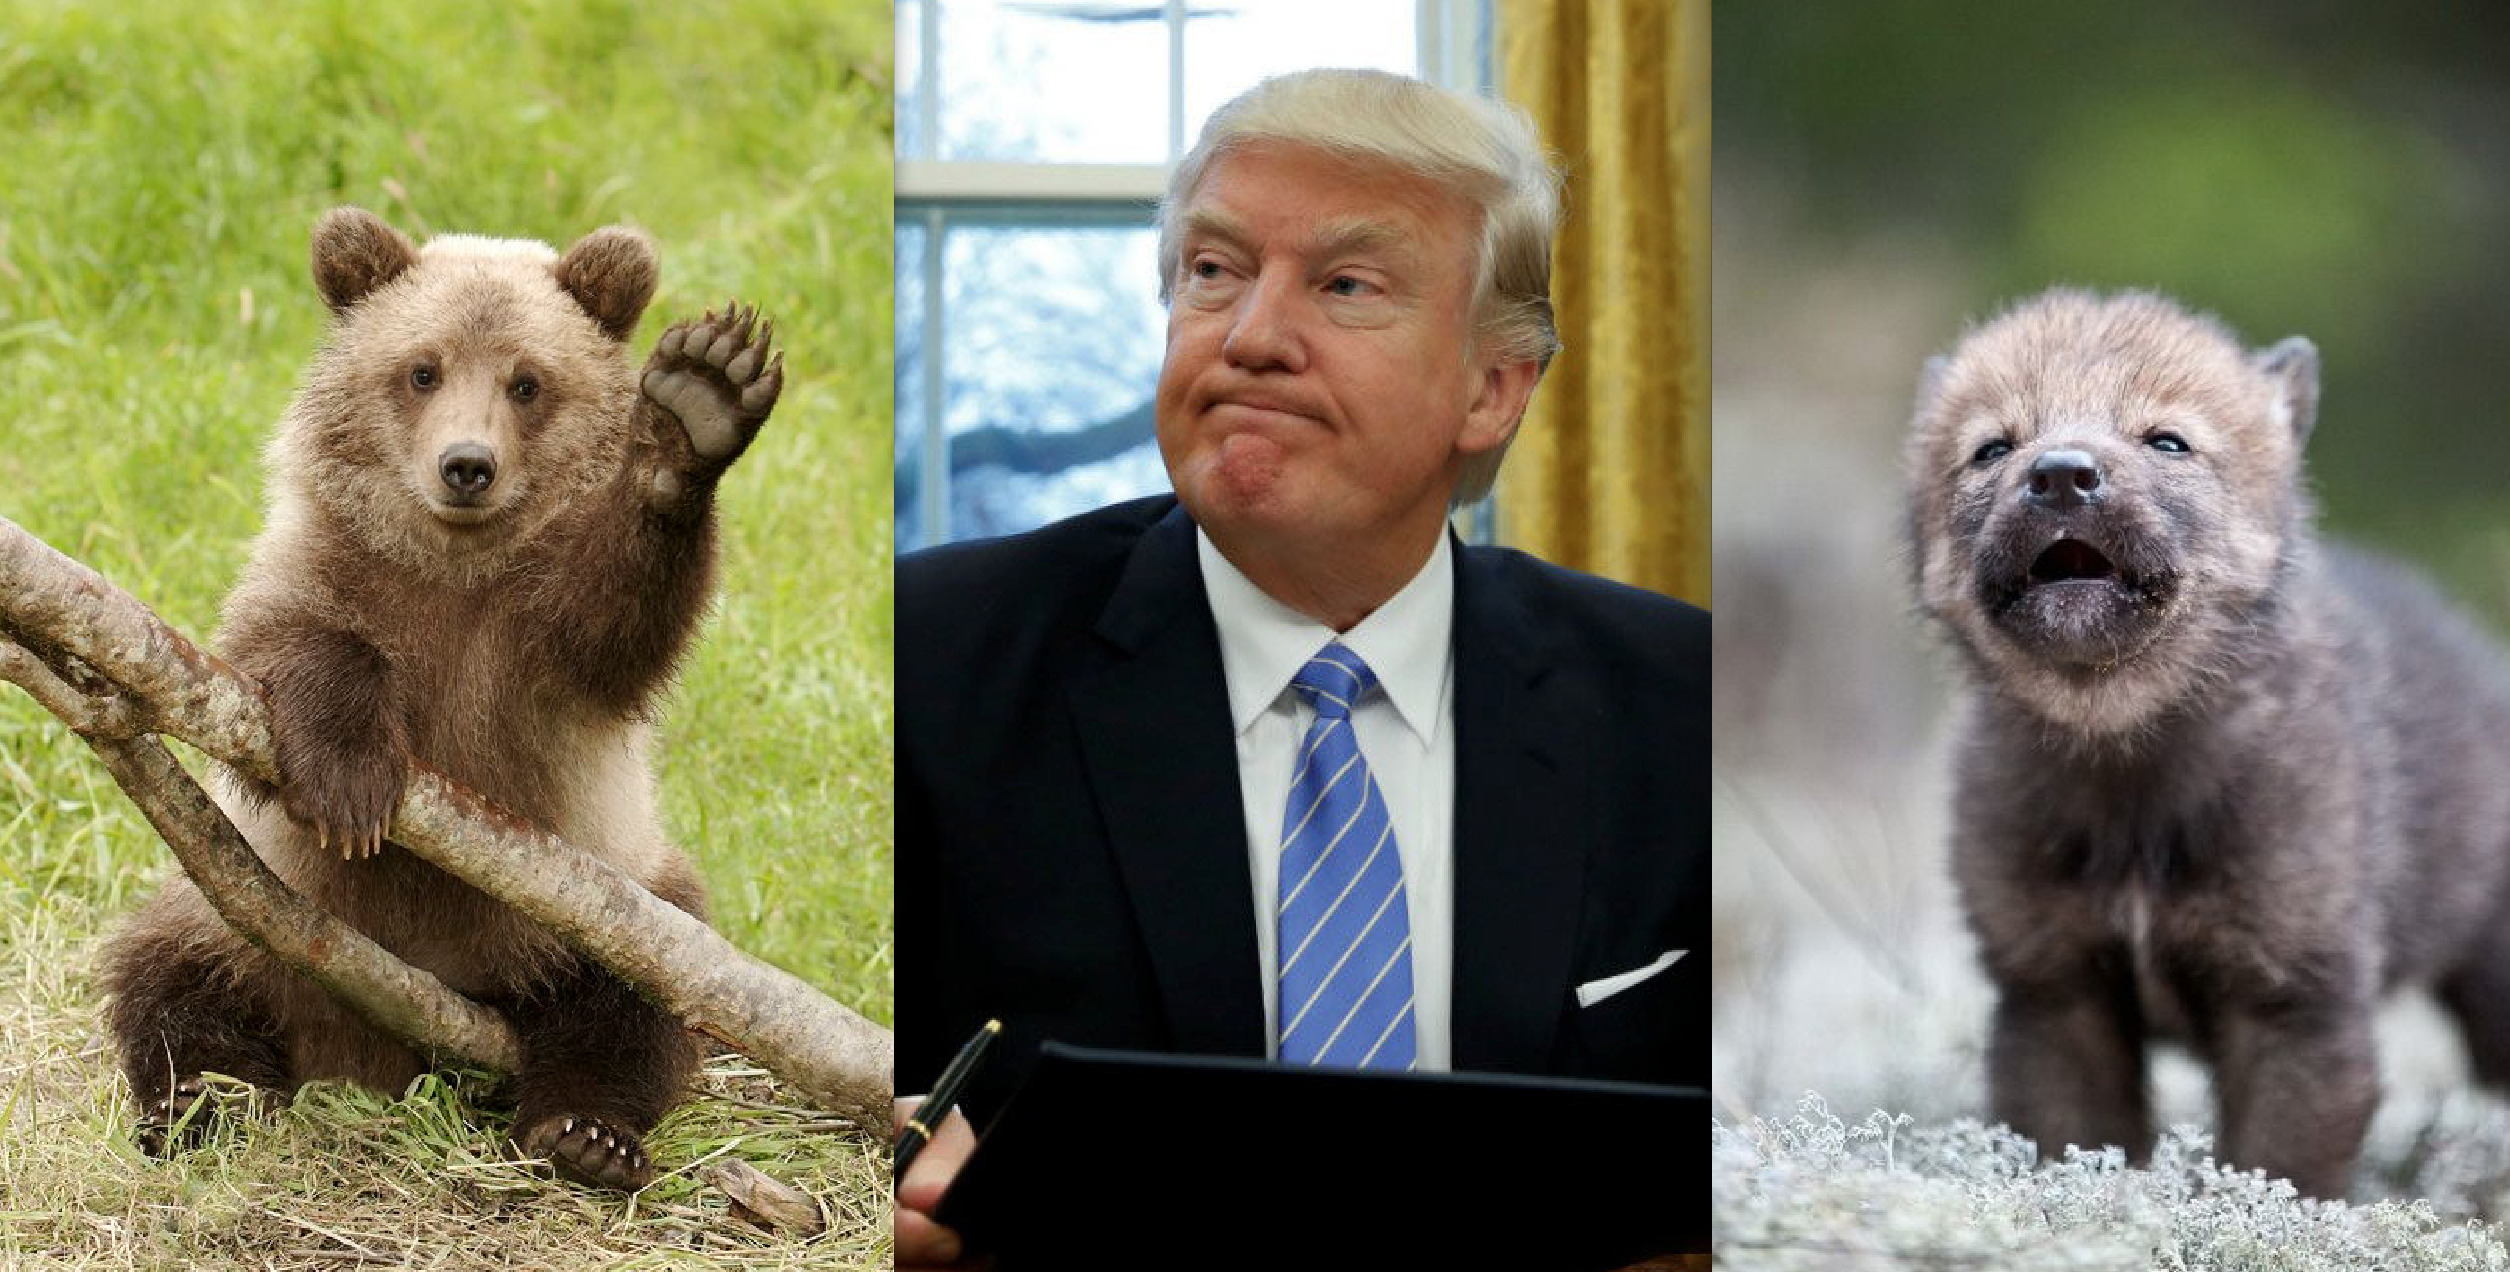 Center for Biological Diversity Sues Trump for Signing HJR 69 Allowing Slaughter of Bear Cubs, Wolf Pups